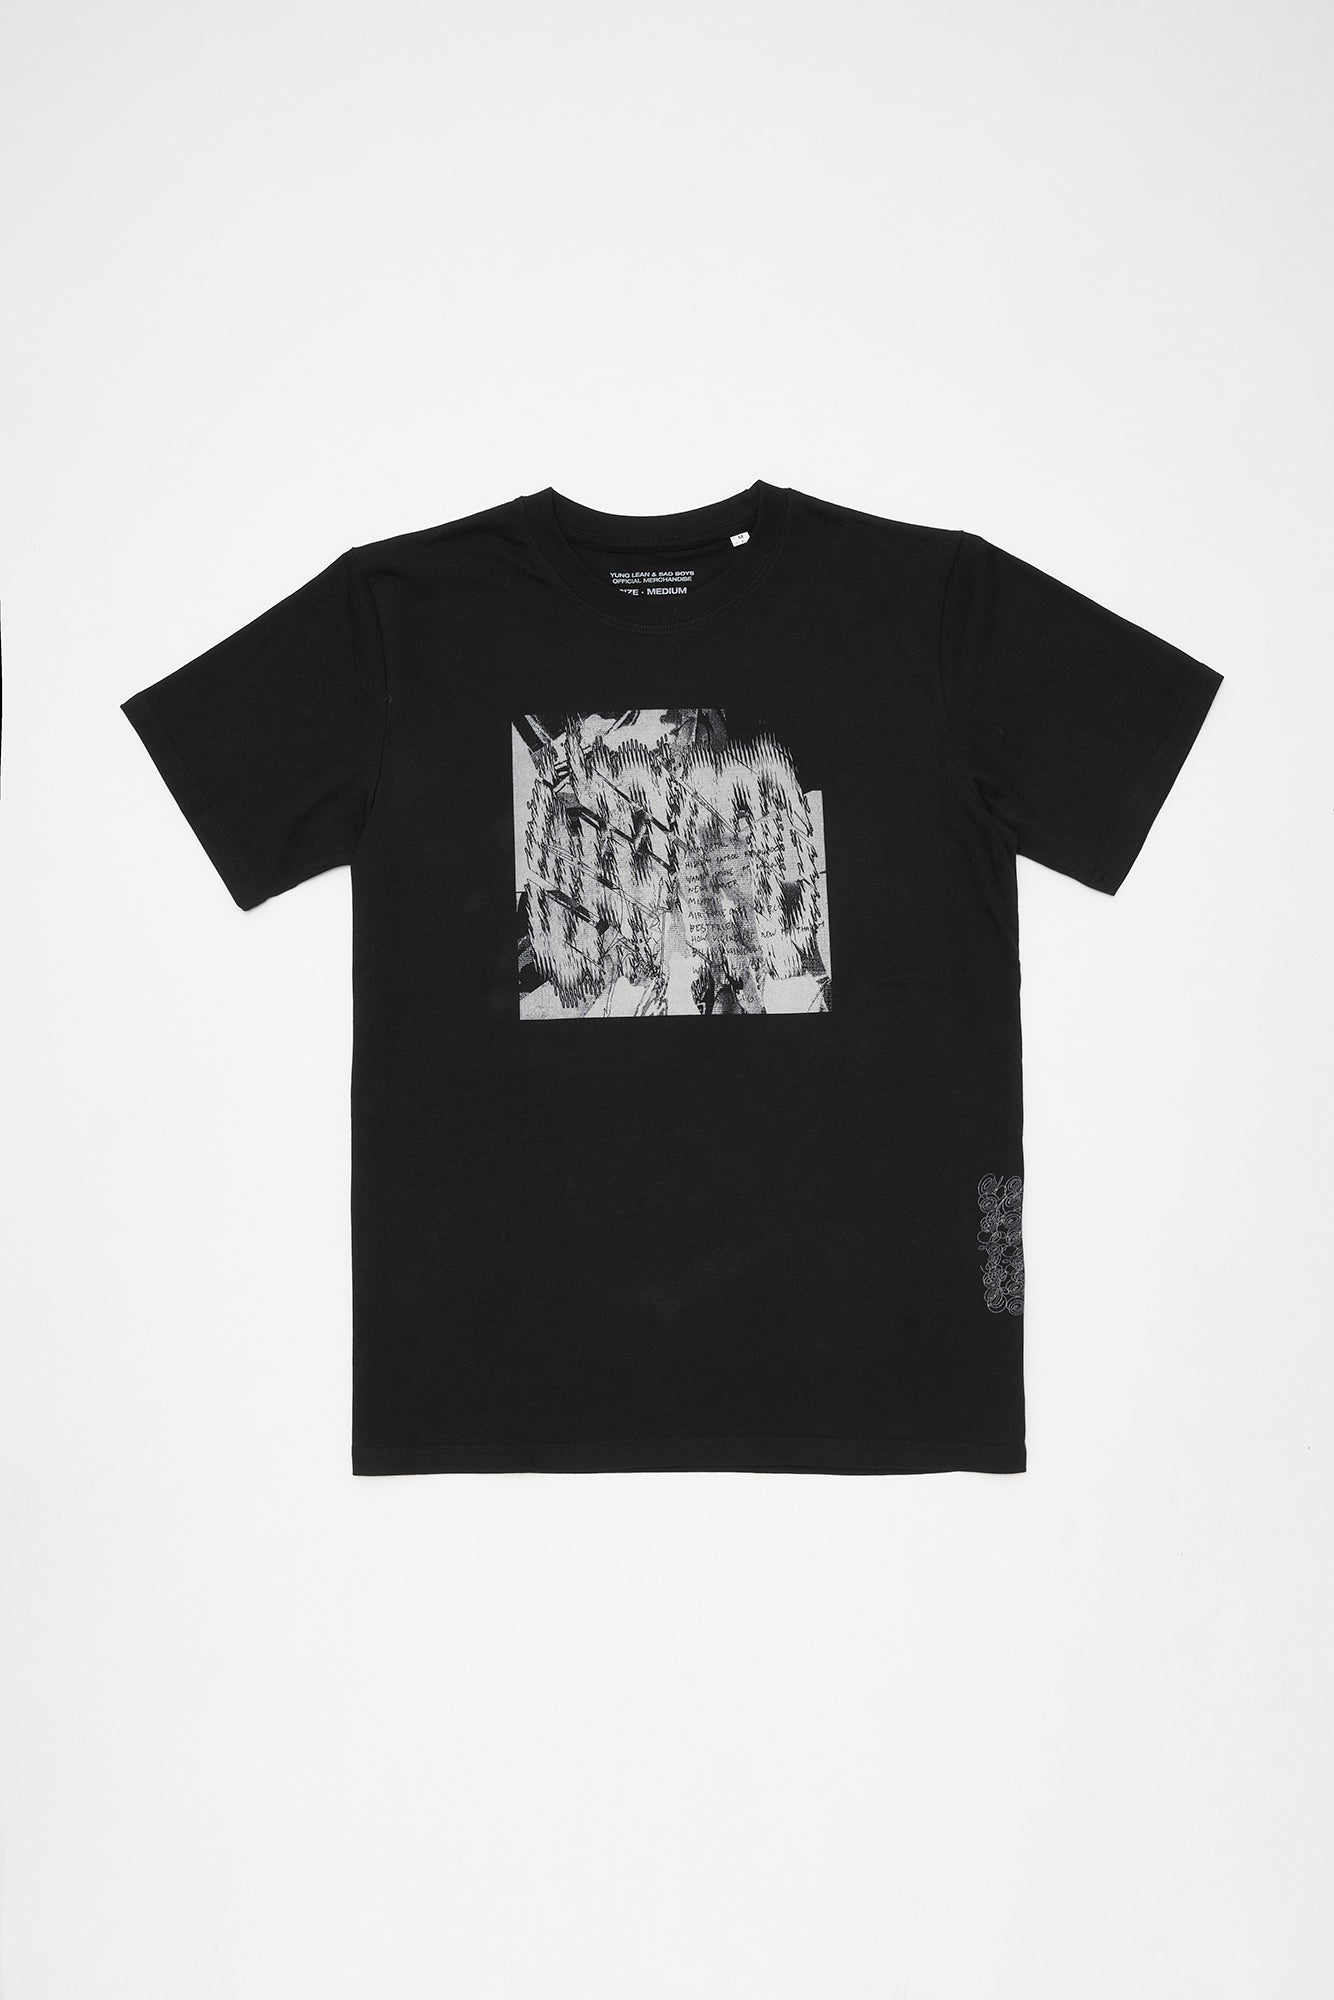 WARLORD COVER T-SHIRT (BLACK)